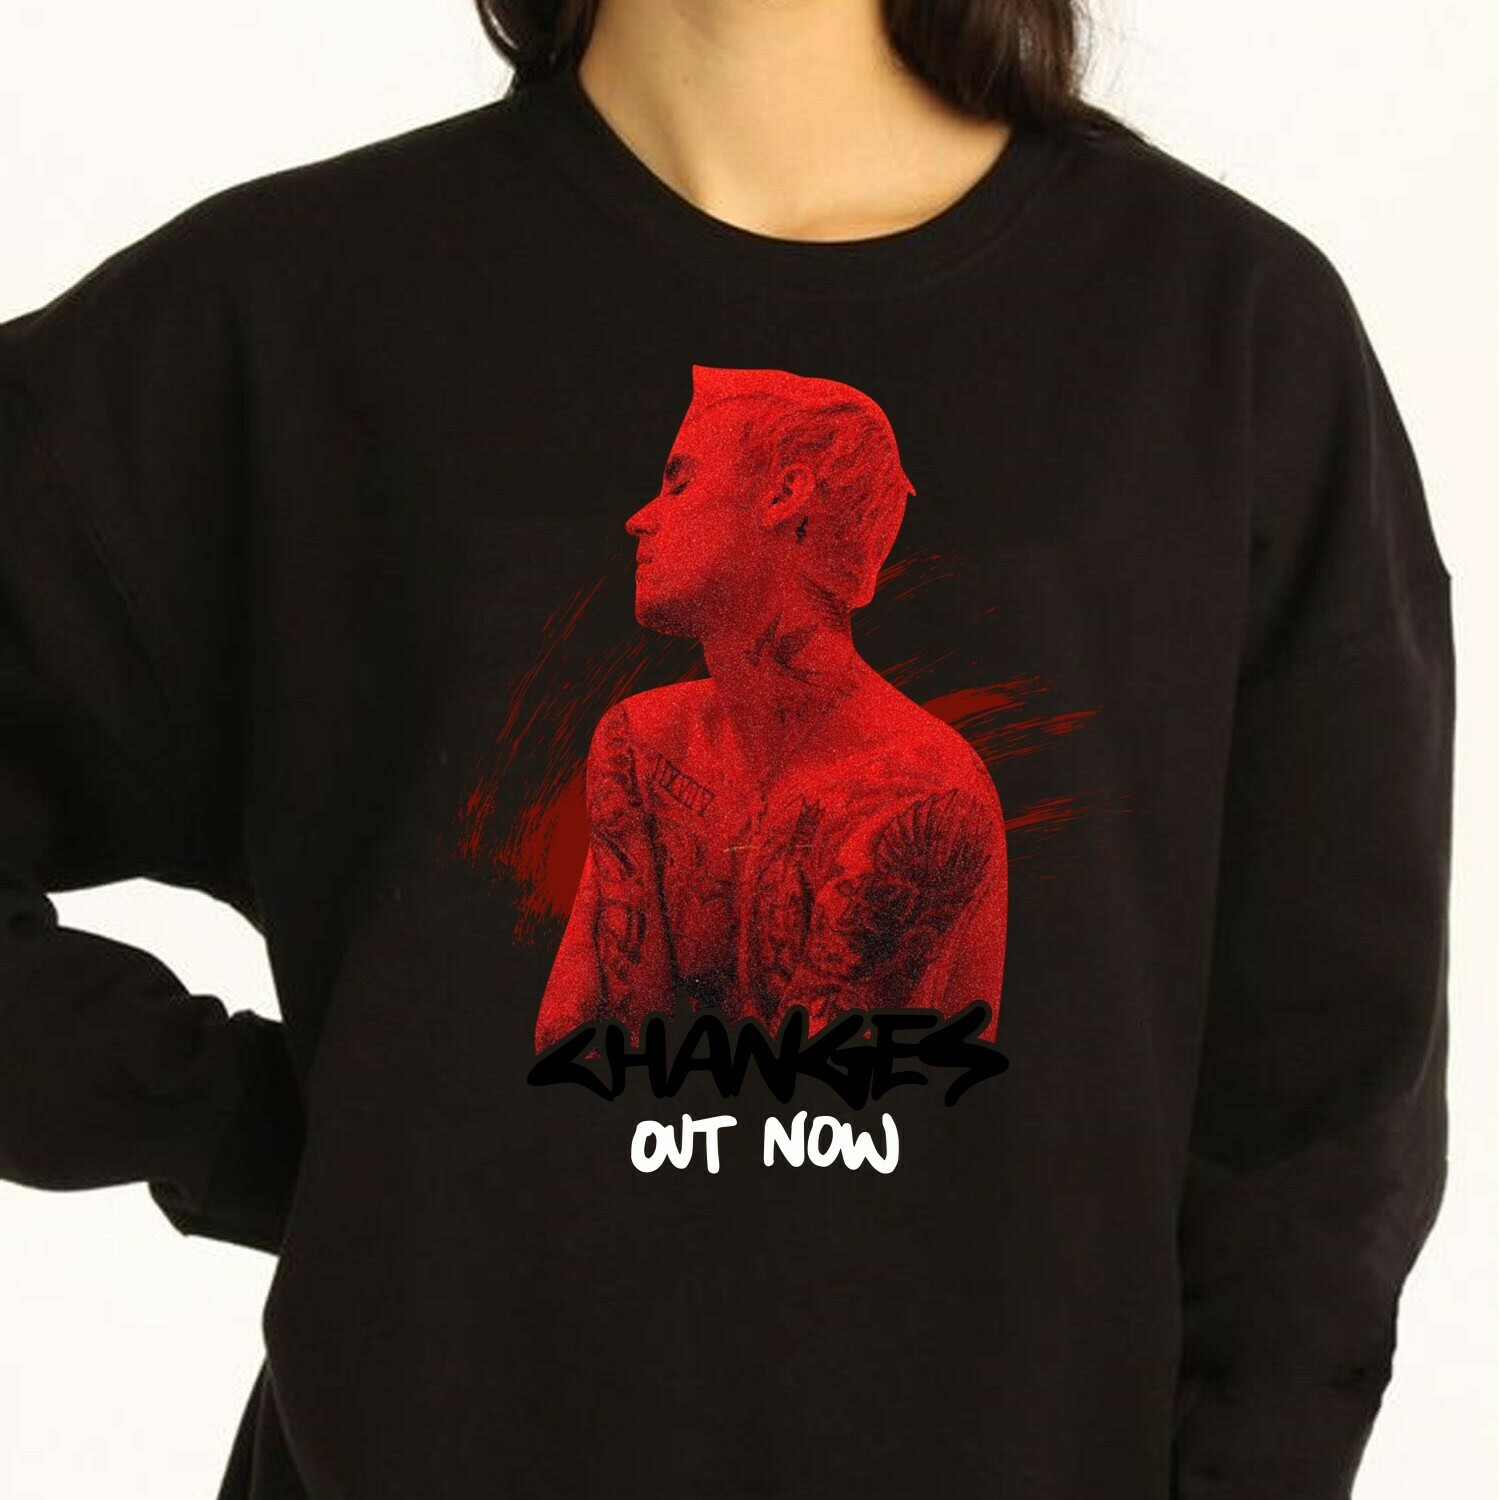 Justin Bieber changes out now Justin Bieber's new single 'Yummy' Changes Vinyl Get Me Purpose Concert Music Fan 2020  T-Shirt Hoodie Sweatshirt Sweater Tee Kids Youth Gifts Jolly Family Gifts